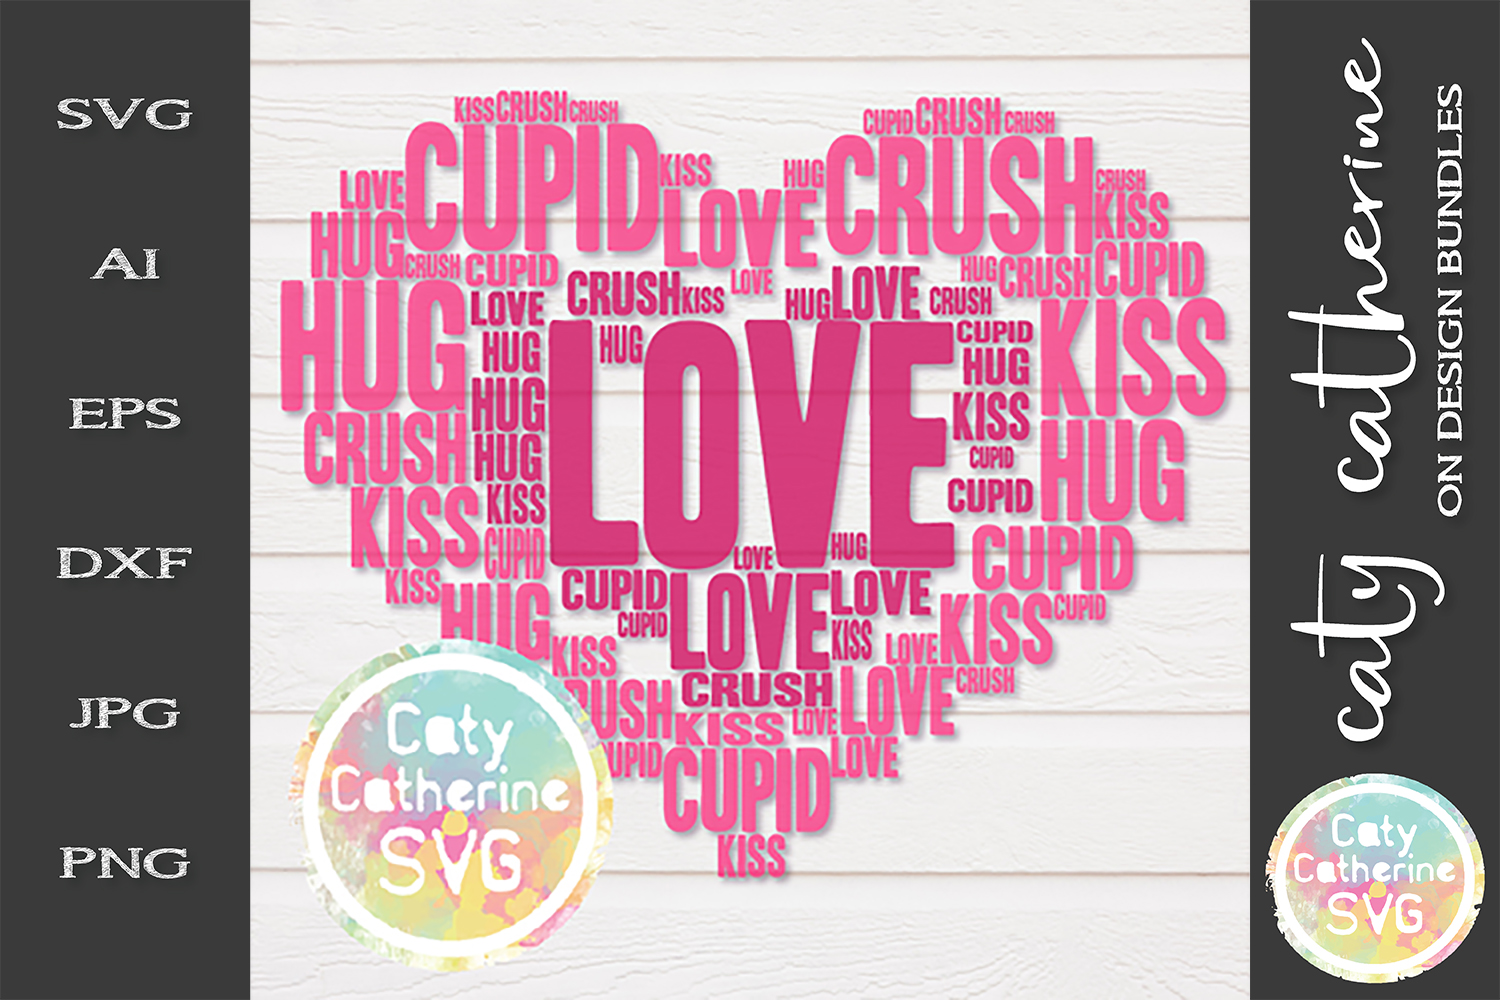 Love Heart Word Collage Hug Kiss Cupid Crush SVG Cut File example image 1